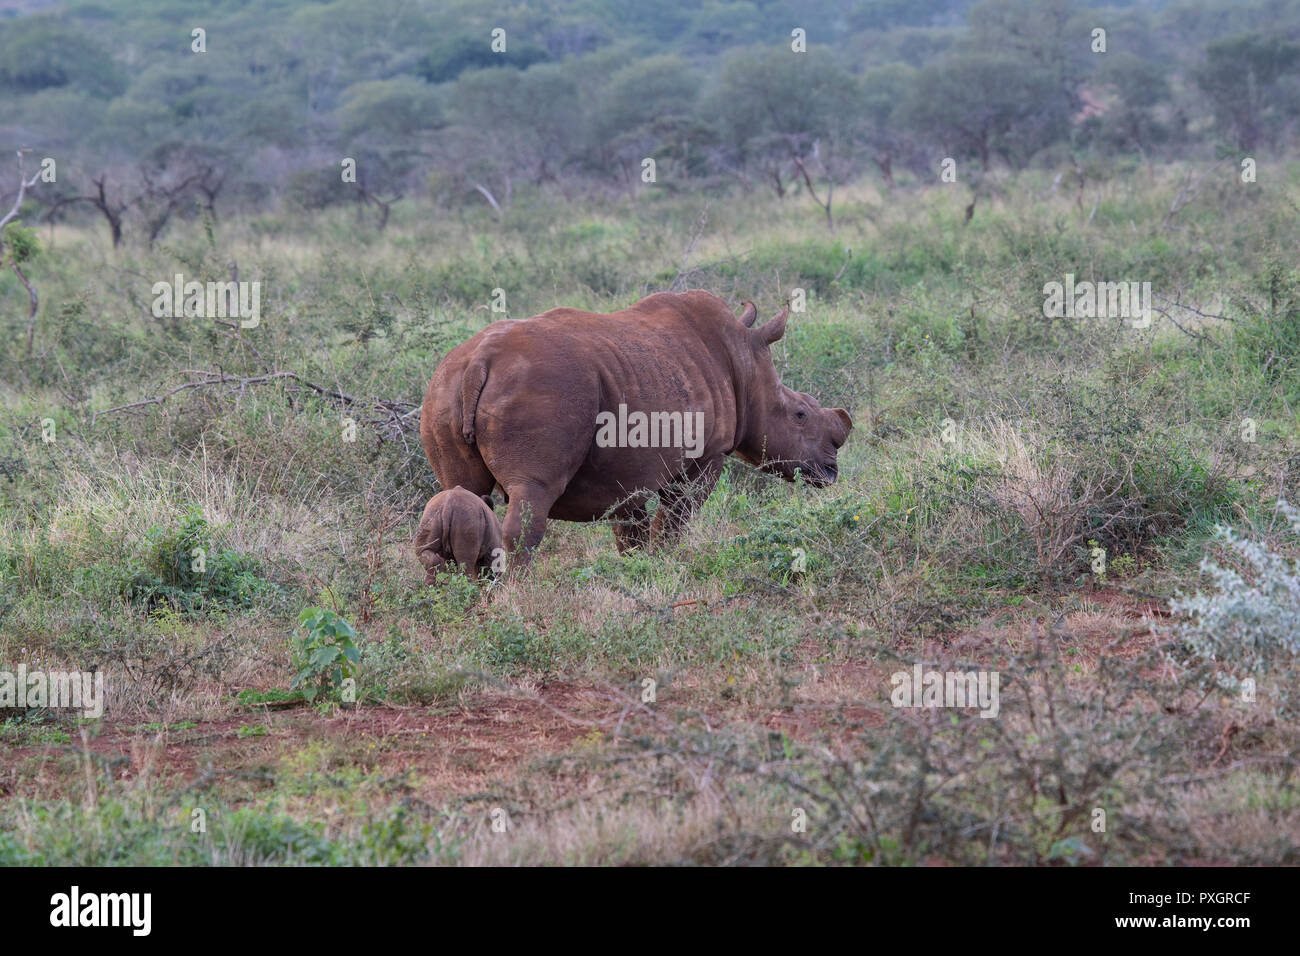 White Rhinoceros Ceratotherium simum with baby calf following in South African scrub on Zimanga Private Game Reserve Stock Photo